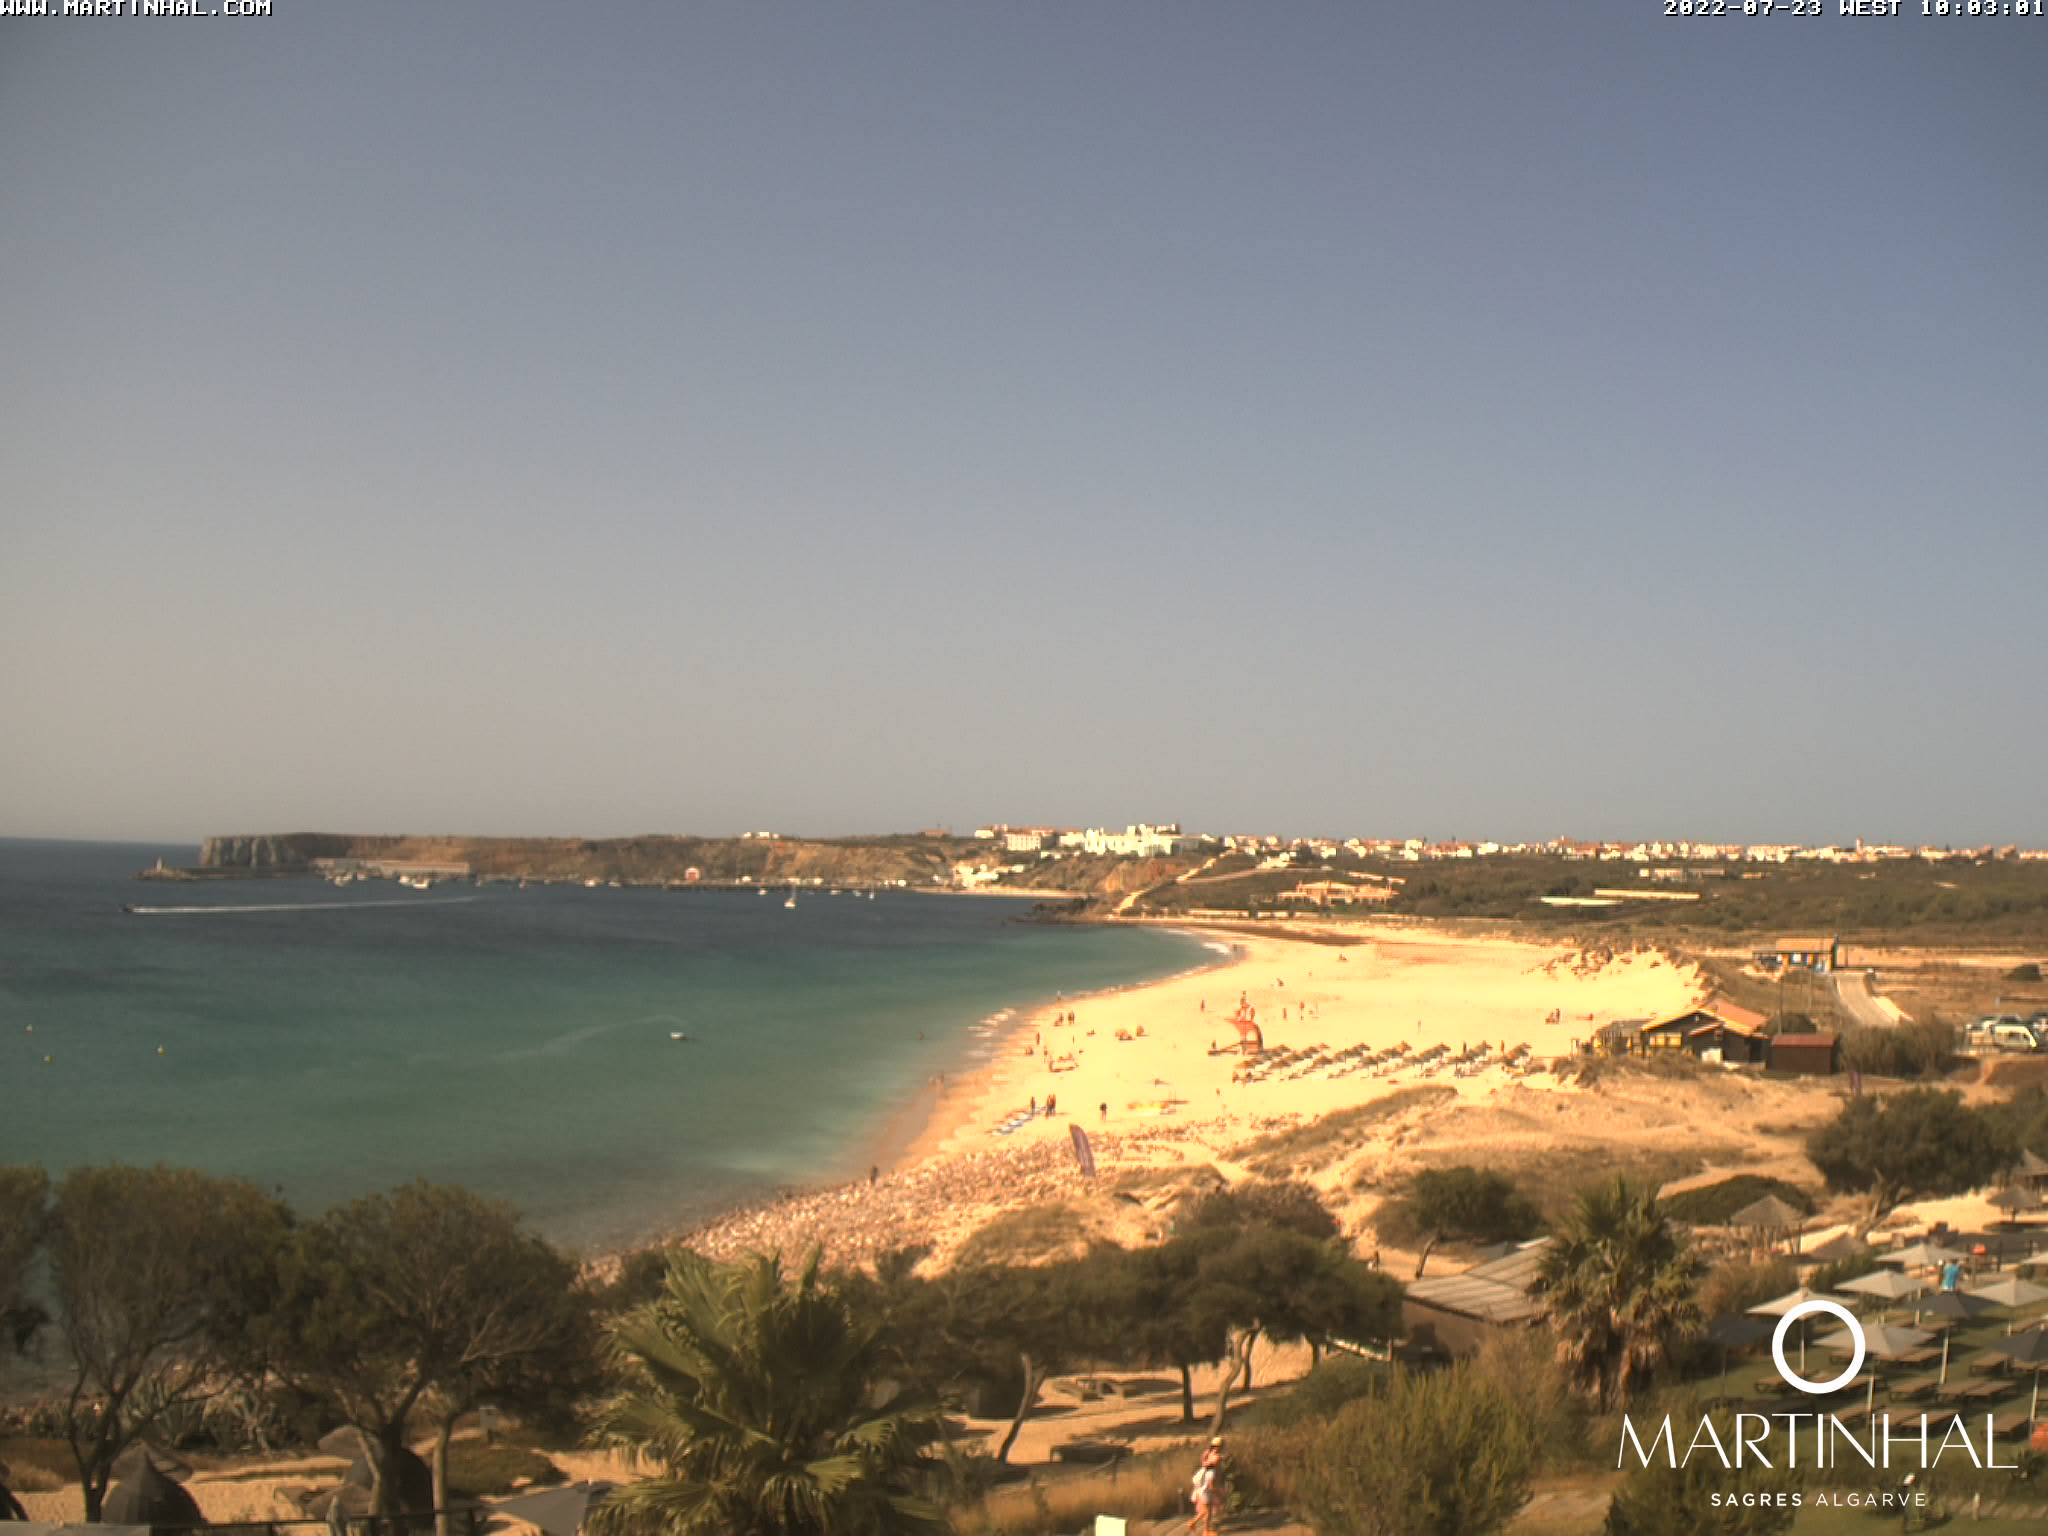 Webcam Sagres Algarve Portugal 10am